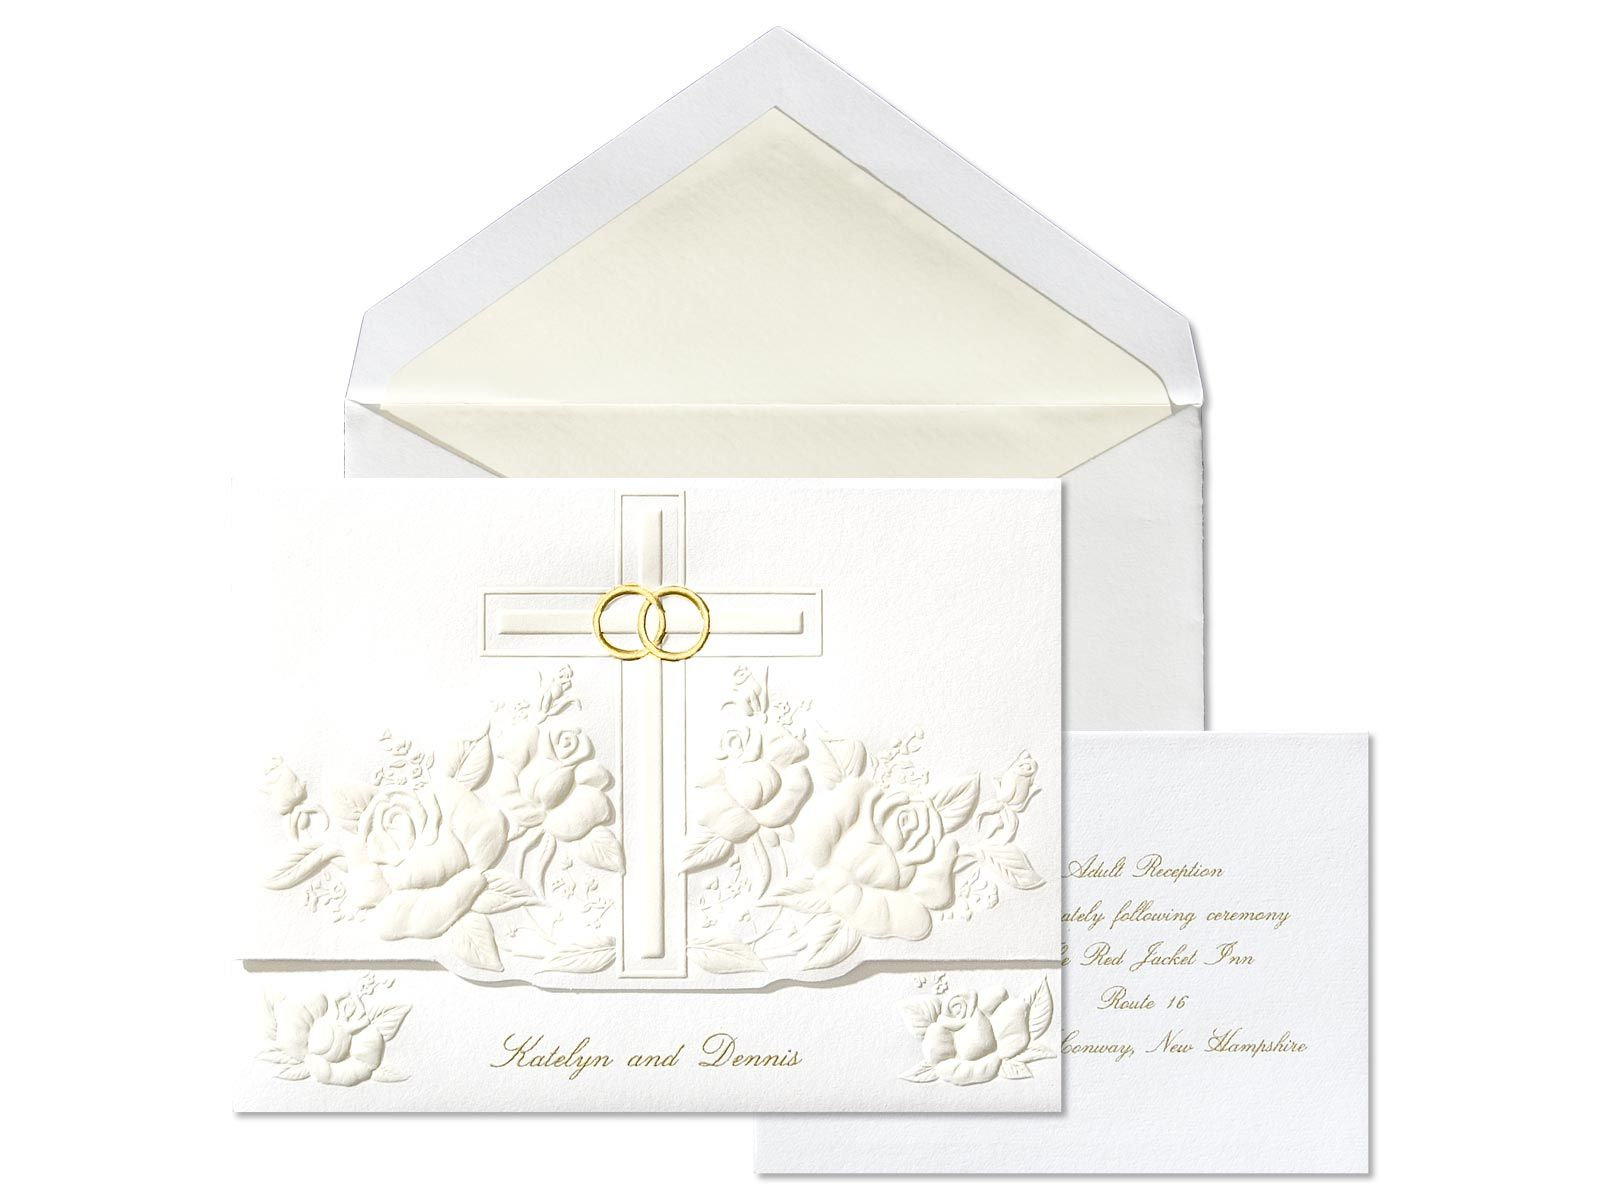 Unique Christian Wedding Invitations 12 Ideas with Christian Wedding ...